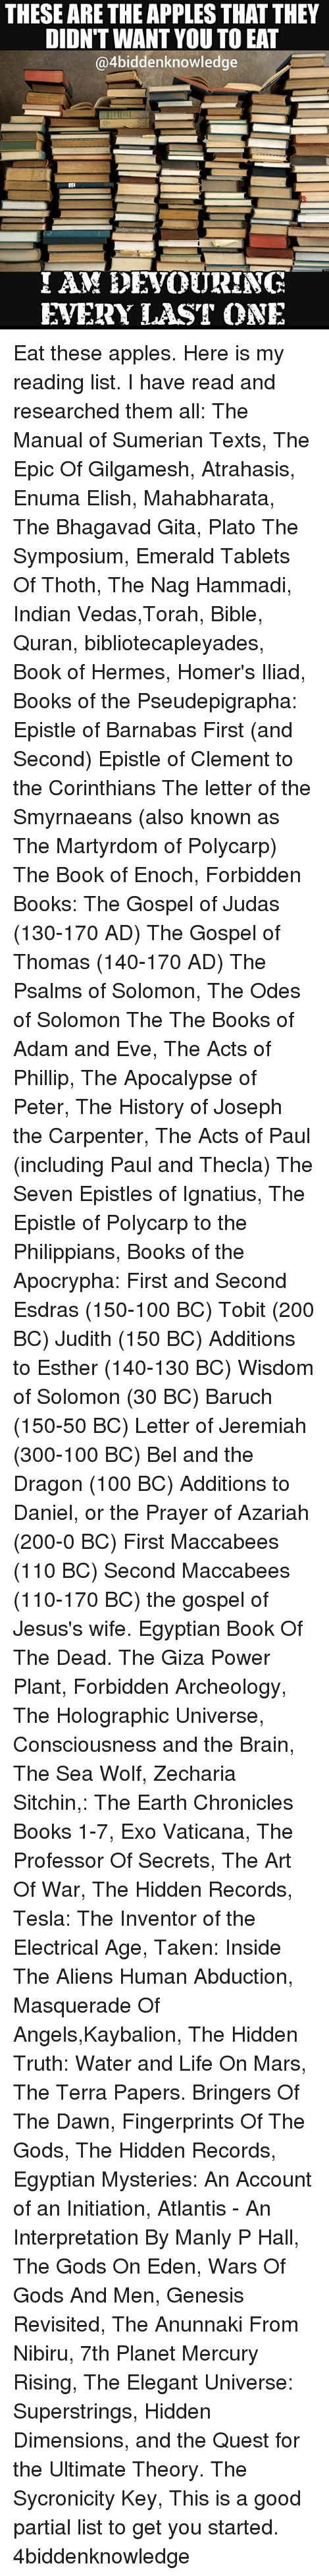 initiation: THESE ARE THE APPLES THATTHEY  DIDN'T WANT YOU TOEAT  @4biddenknowledge  AM EDEVOURING  EVERY LAST ONE Eat these apples. Here is my reading list. I have read and researched them all: The Manual of Sumerian Texts, The Epic Of Gilgamesh, Atrahasis, Enuma Elish, Mahabharata, The Bhagavad Gita, Plato The Symposium, Emerald Tablets Of Thoth, The Nag Hammadi, Indian Vedas,Torah, Bible, Quran, bibliotecapleyades, Book of Hermes, Homer's Iliad, Books of the Pseudepigrapha: Epistle of Barnabas First (and Second) Epistle of Clement to the Corinthians The letter of the Smyrnaeans (also known as The Martyrdom of Polycarp) The Book of Enoch, Forbidden Books: The Gospel of Judas (130-170 AD) The Gospel of Thomas (140-170 AD) The Psalms of Solomon, The Odes of Solomon The The Books of Adam and Eve, The Acts of Phillip, The Apocalypse of Peter, The History of Joseph the Carpenter, The Acts of Paul (including Paul and Thecla) The Seven Epistles of Ignatius, The Epistle of Polycarp to the Philippians, Books of the Apocrypha: First and Second Esdras (150-100 BC) Tobit (200 BC) Judith (150 BC) Additions to Esther (140-130 BC) Wisdom of Solomon (30 BC) Baruch (150-50 BC) Letter of Jeremiah (300-100 BC) Bel and the Dragon (100 BC) Additions to Daniel, or the Prayer of Azariah (200-0 BC) First Maccabees (110 BC) Second Maccabees (110-170 BC) the gospel of Jesus's wife. Egyptian Book Of The Dead. The Giza Power Plant, Forbidden Archeology, The Holographic Universe, Consciousness and the Brain, The Sea Wolf, Zecharia Sitchin,: The Earth Chronicles Books 1-7, Exo Vaticana, The Professor Of Secrets, The Art Of War, The Hidden Records, Tesla: The Inventor of the Electrical Age, Taken: Inside The Aliens Human Abduction, Masquerade Of Angels,Kaybalion, The Hidden Truth: Water and Life On Mars, The Terra Papers. Bringers Of The Dawn, Fingerprints Of The Gods, The Hidden Records, Egyptian Mysteries: An Account of an Initiation, Atlantis - An Interpretation By Manly P Hall, The Gods On Eden, Wars Of Gods And Men, Genesis Revisited, The Anunnaki From Nibiru, 7th Planet Mercury Rising, The Elegant Universe: Superstrings, Hidden Dimensions, and the Quest for the Ultimate Theory. The Sycronicity Key, This is a good partial list to get you started. 4biddenknowledge